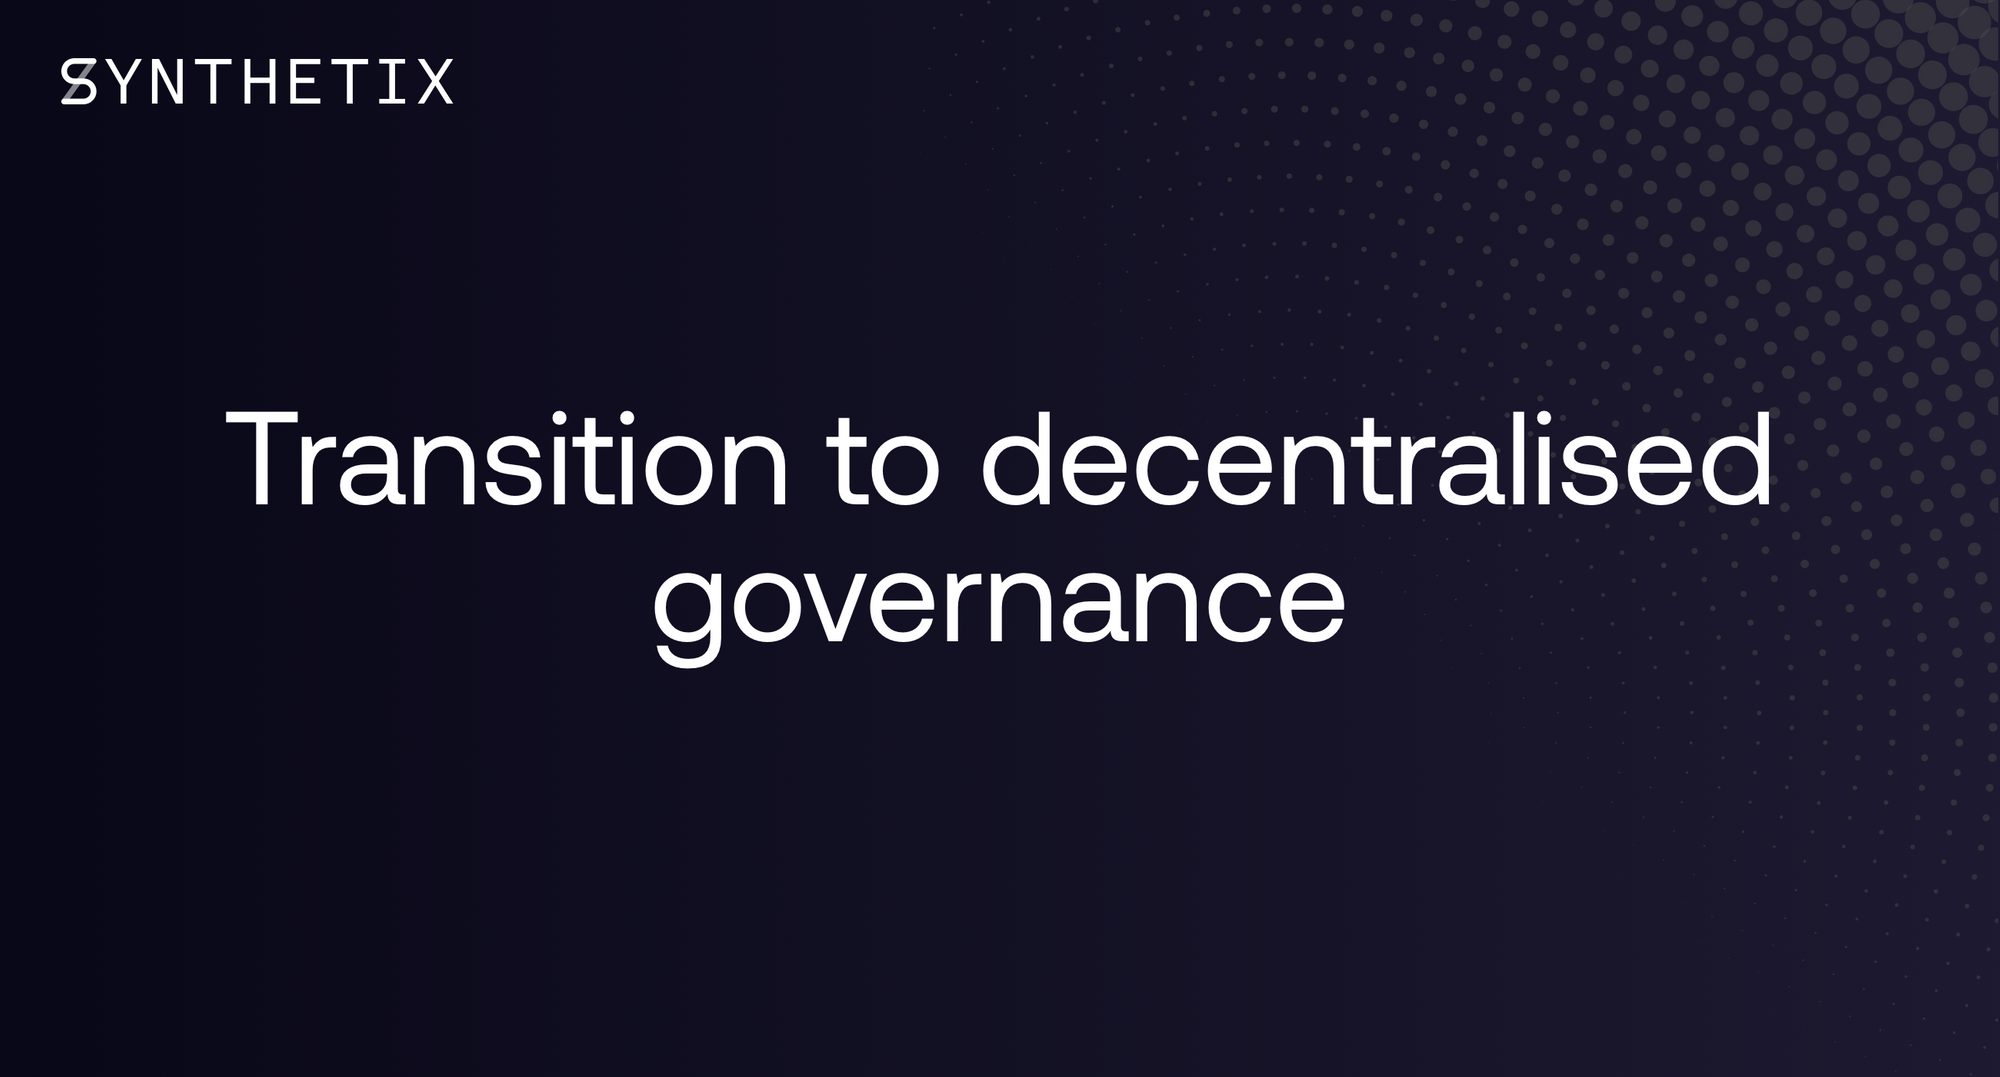 Transition to decentralised governance